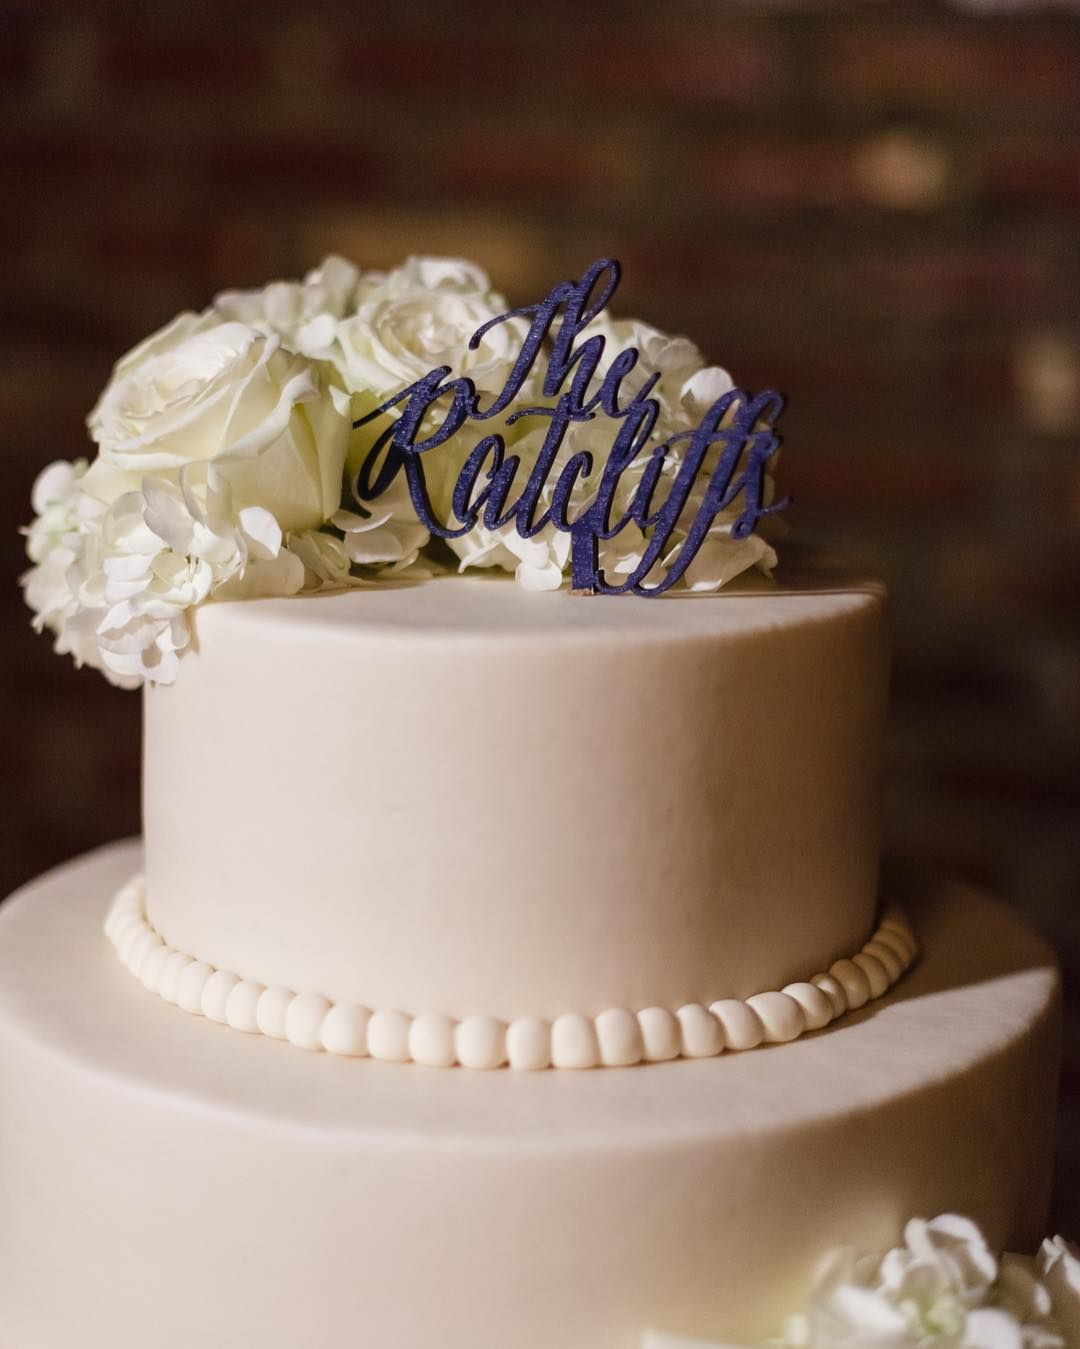 Wedding decor images  Rustic Wooden Wedding Decor Cake Toppers For more info visit